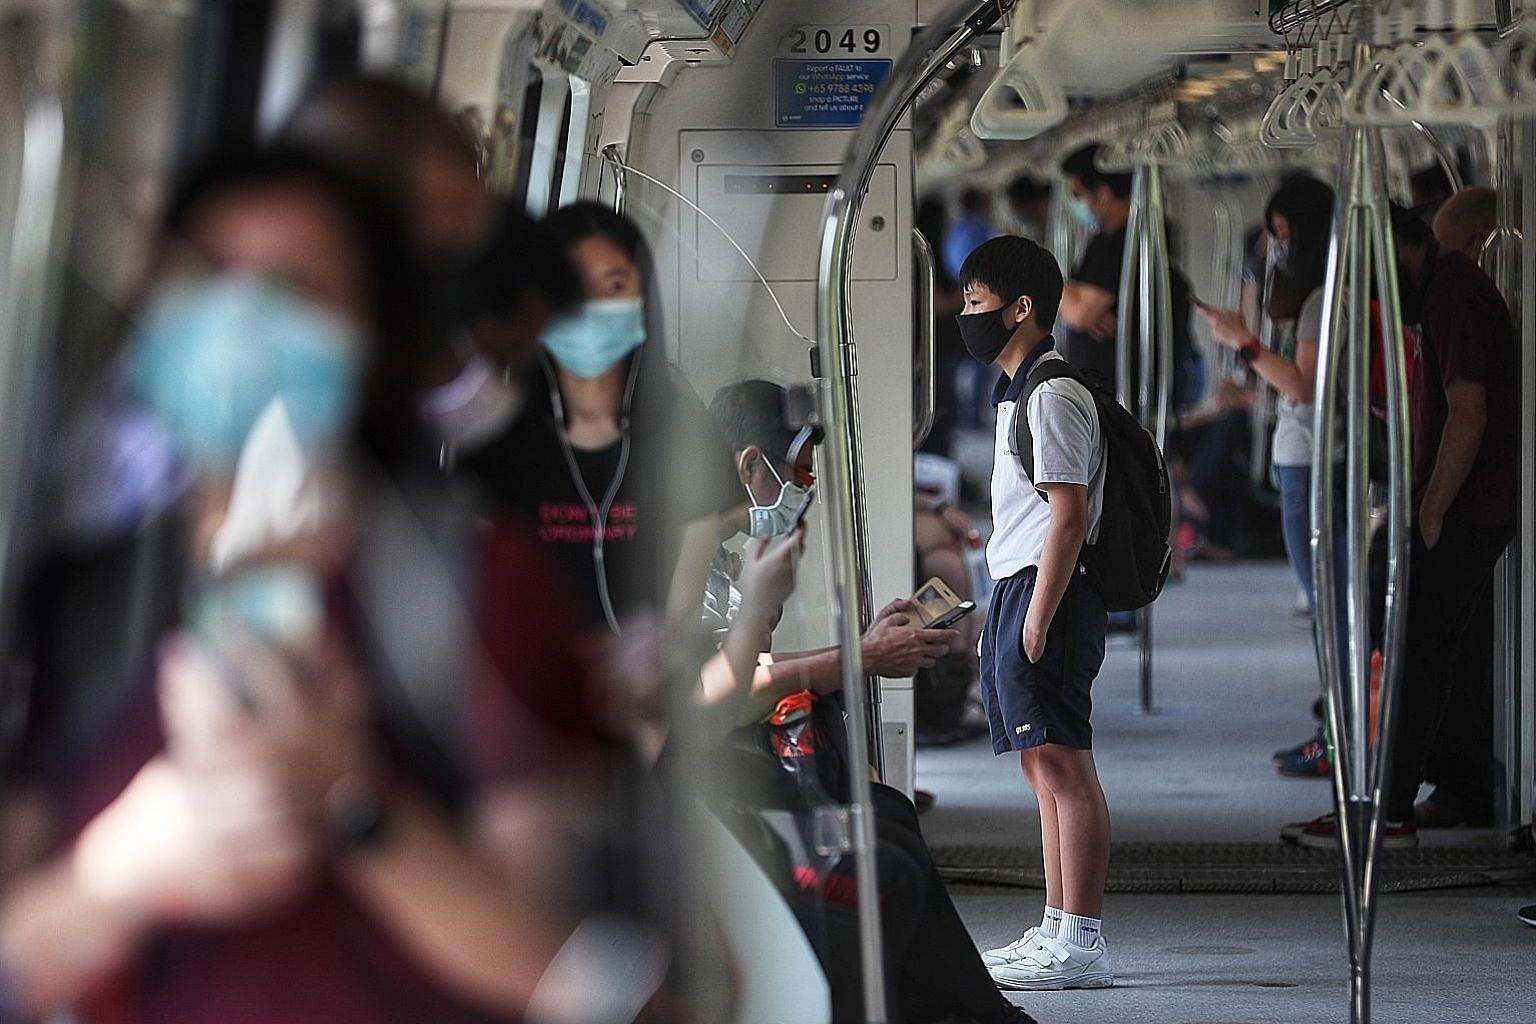 Commuters on an MRT train yesterday. As new evidence emerged, the authorities here changed their advice on the wearing of masks, and people's willingness to adapt has been invaluable in the fight against Covid-19, said Deputy Prime Minister Heng Swee